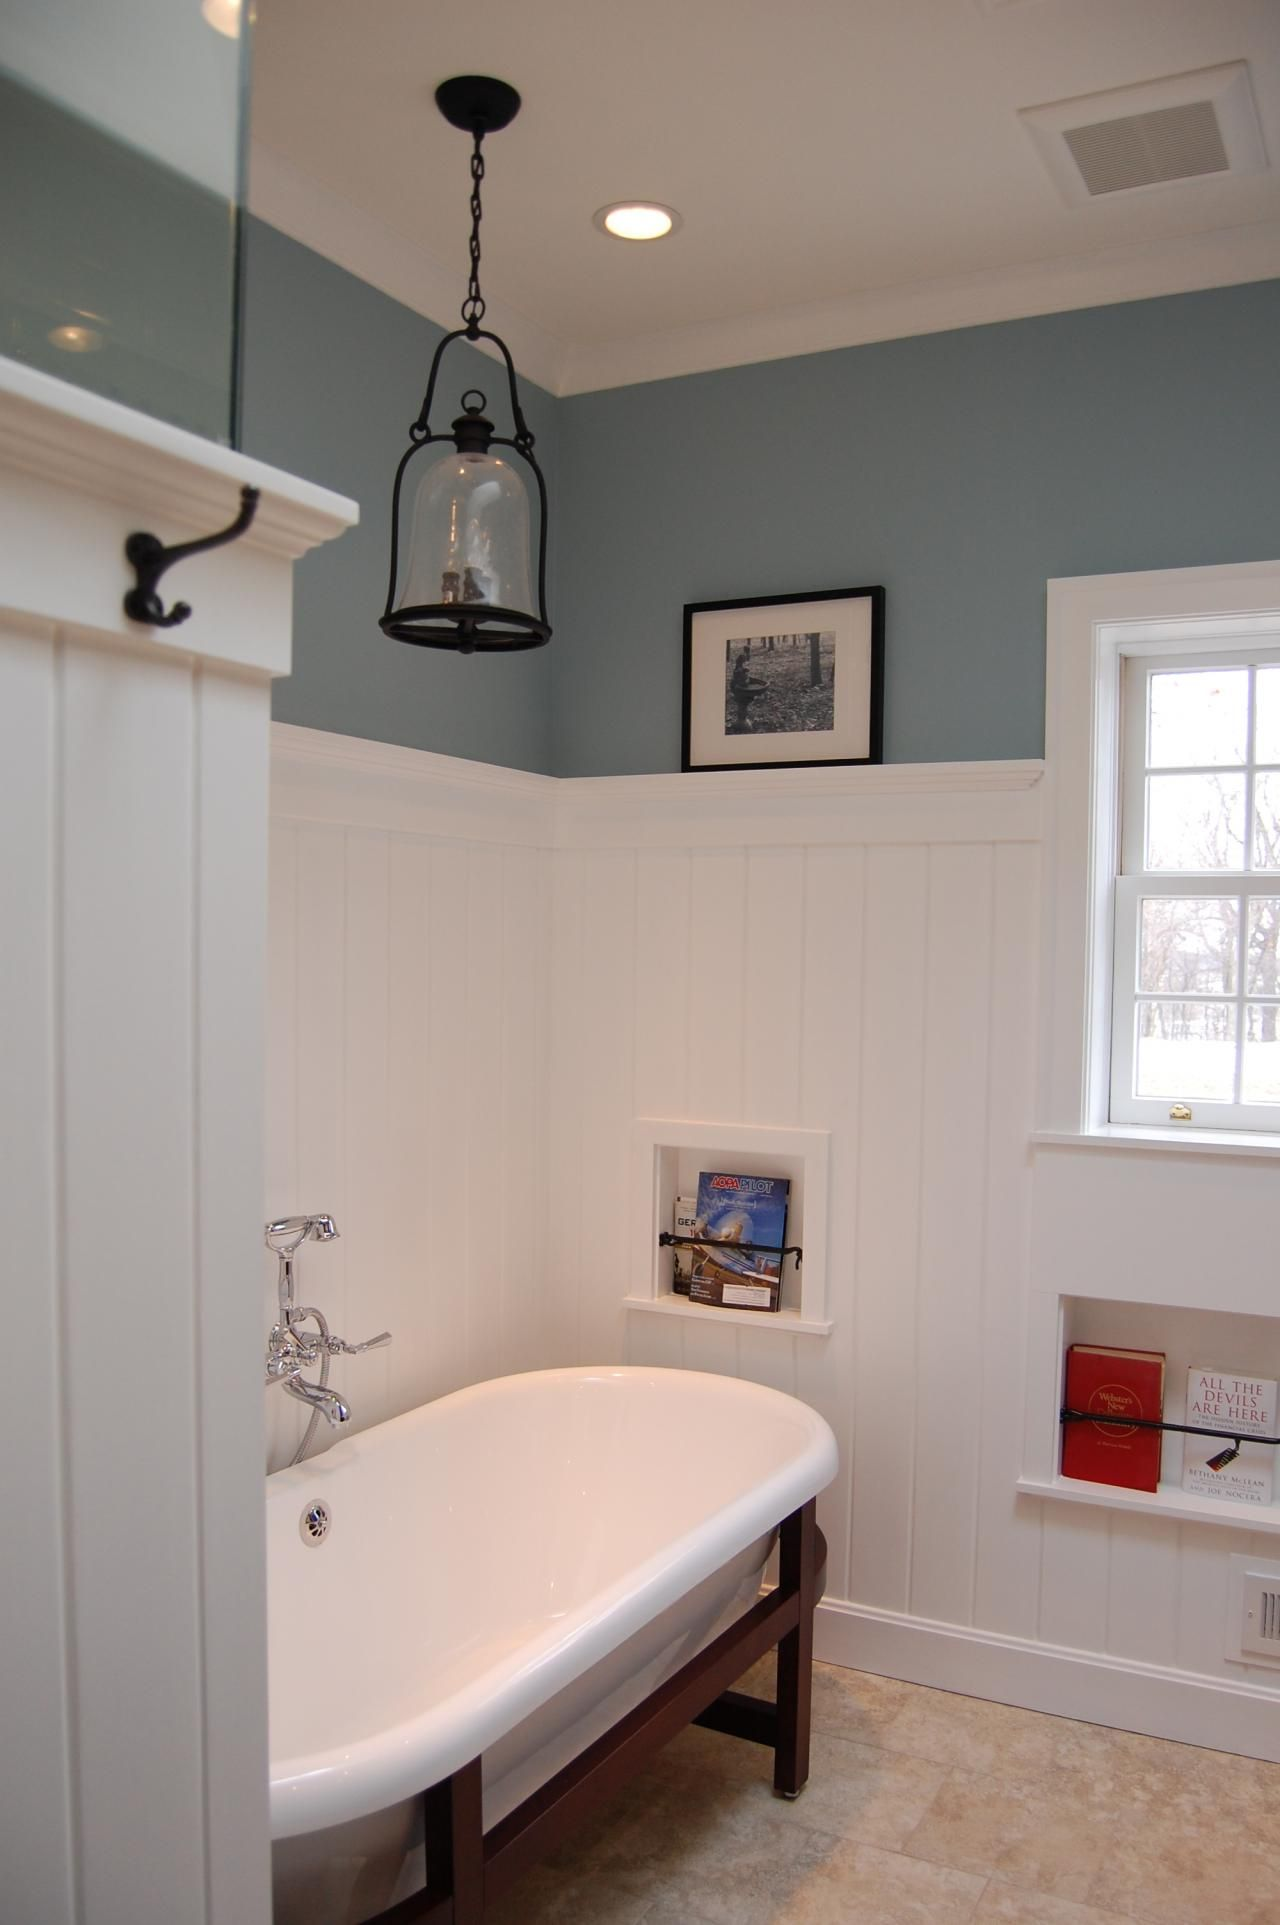 Fairfield Farm Bath Remodel, Included Lots Of Custom Features, Recessed  Niches In The Walls, V Groove Panel Wainscot With Ledge, Freestanding Tub,  ...